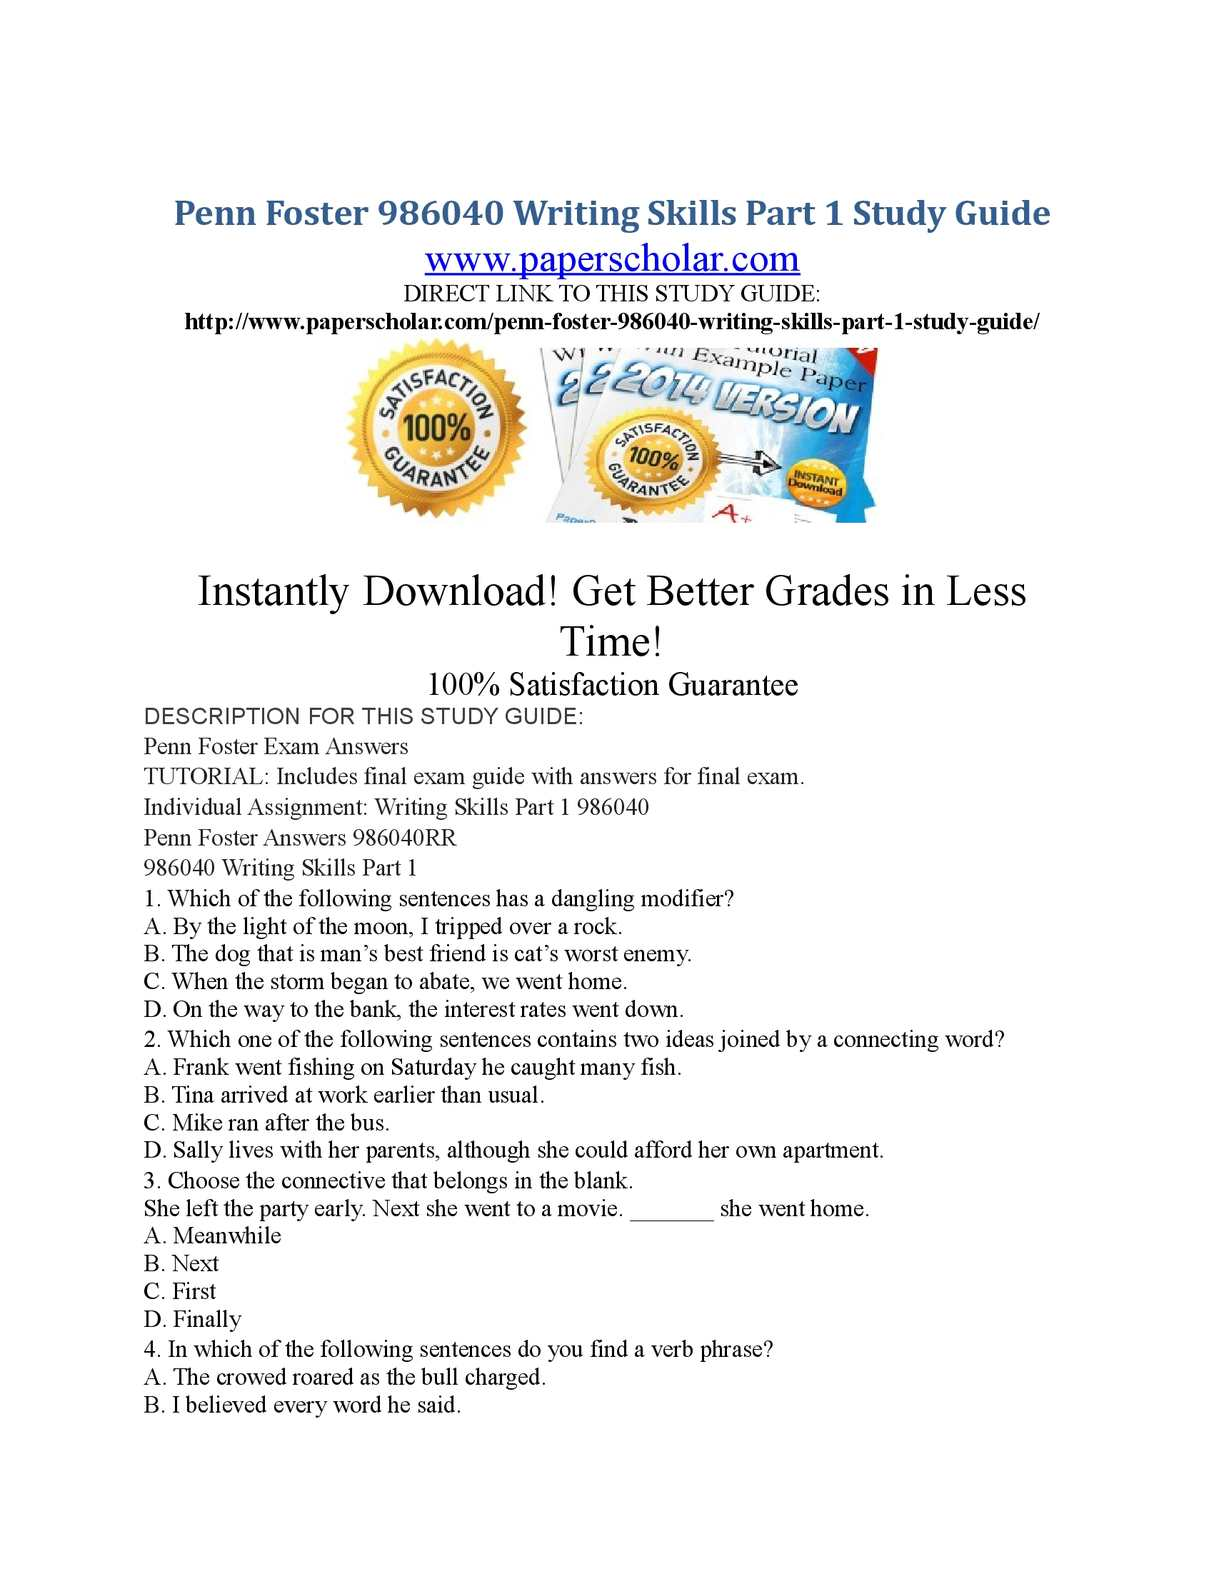 writing skills part The act writing test is a 40-minute essay test that measures your writing skills the test consists of one writing prompt that will describe a complex issue and present three different perspectives on that issue it is a paper-and-pencil test you will write your essay in pencil (no mechanical.